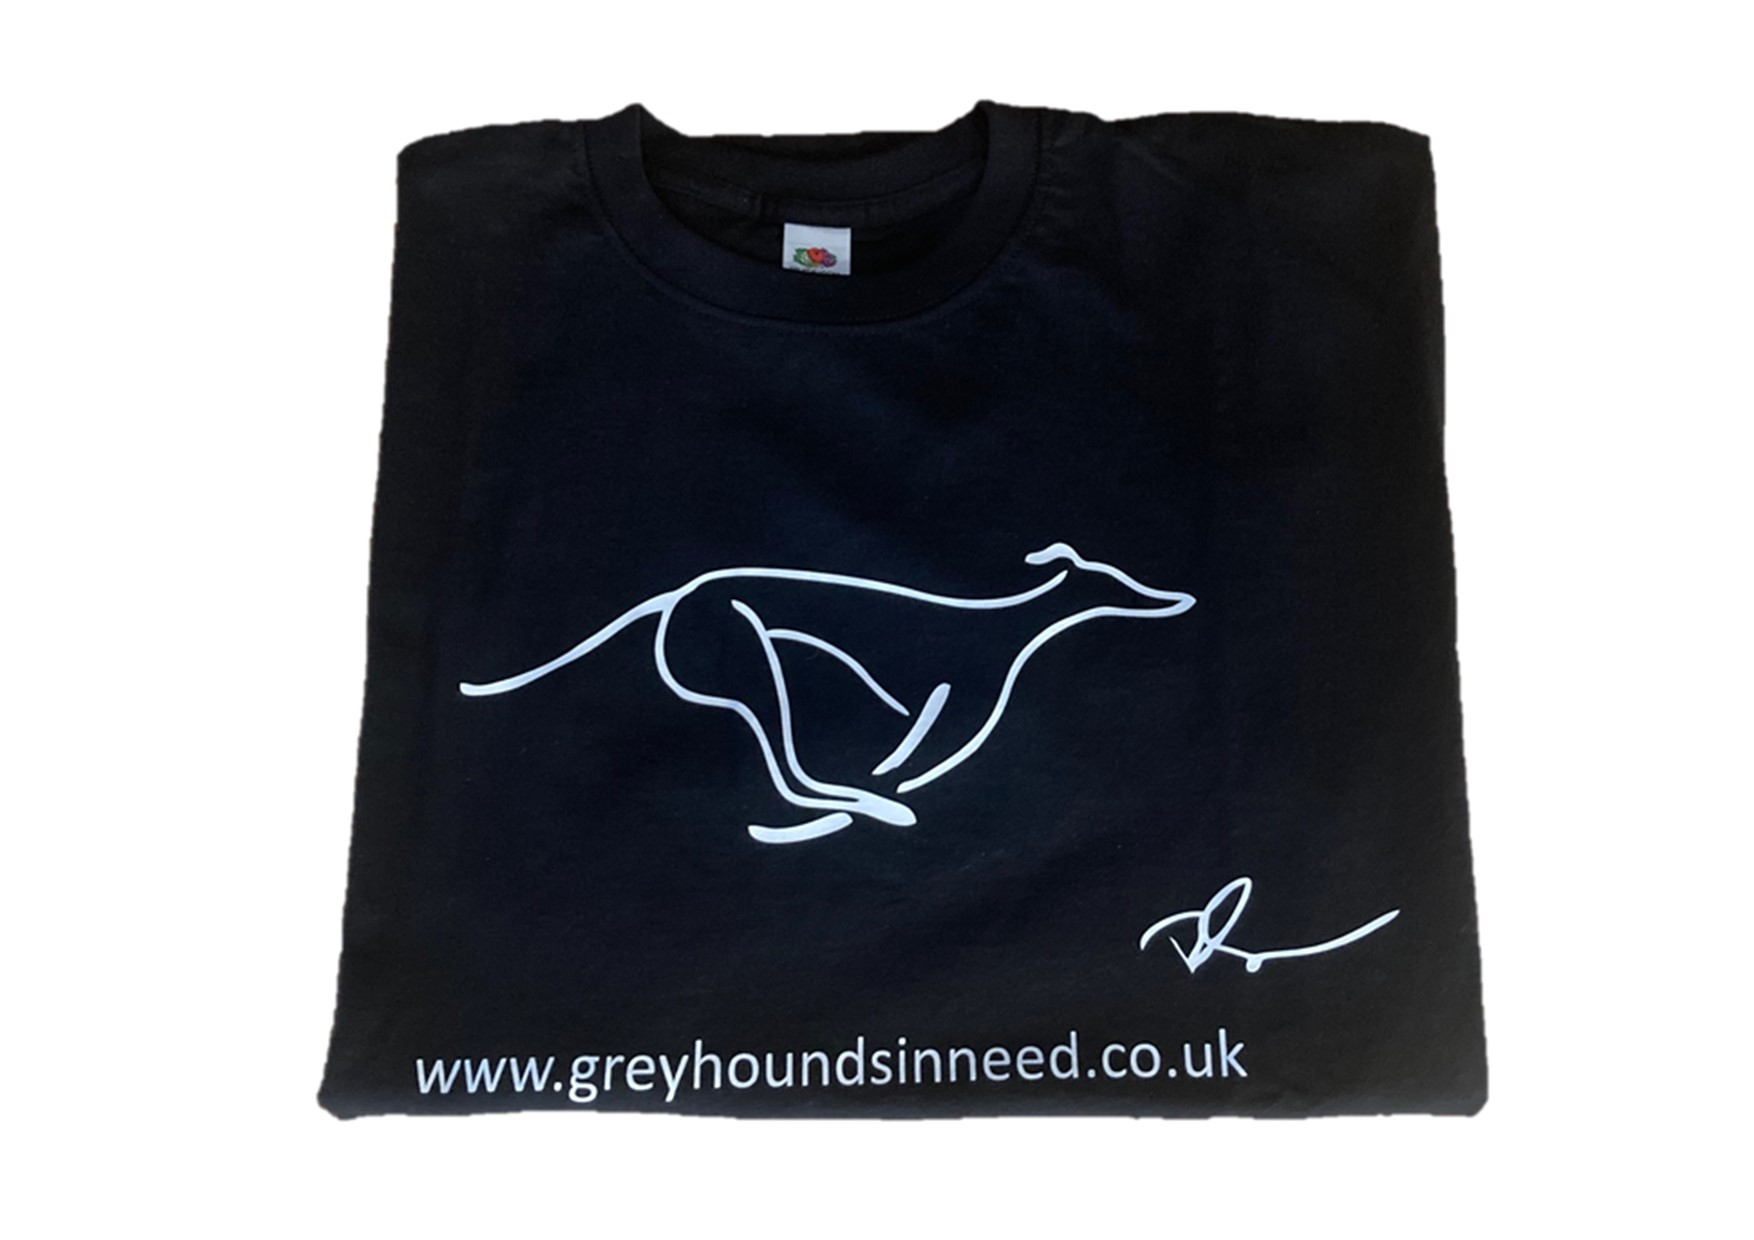 Ricky Gervais designed t-shirt for Greyhounds in Need